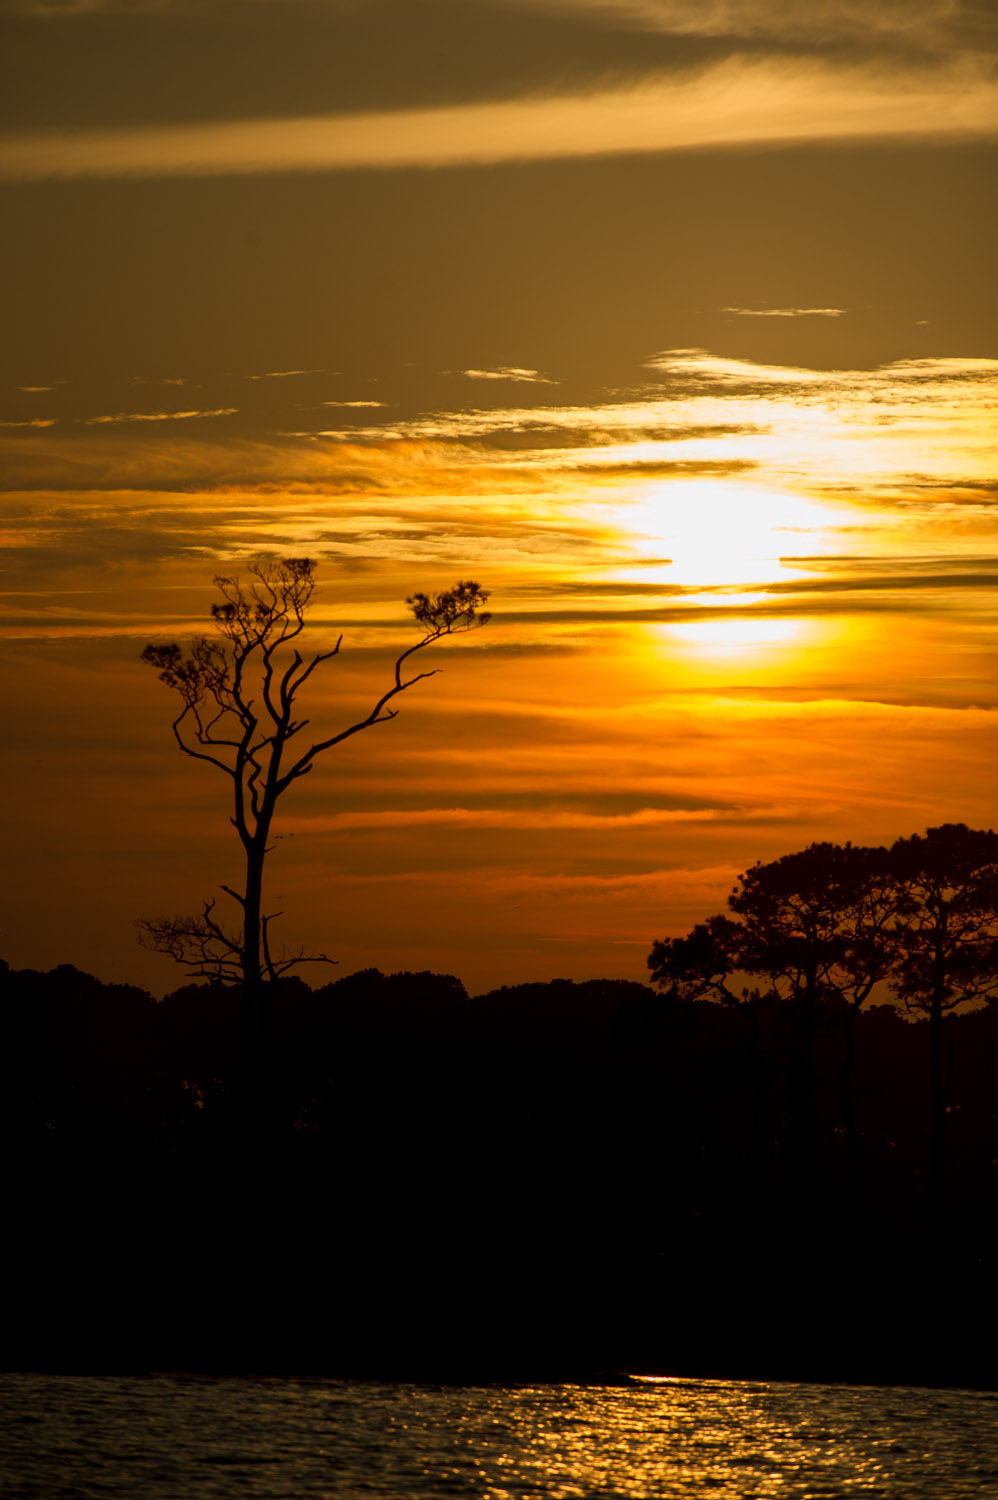 A large dead tree silhouetted against the sunset.